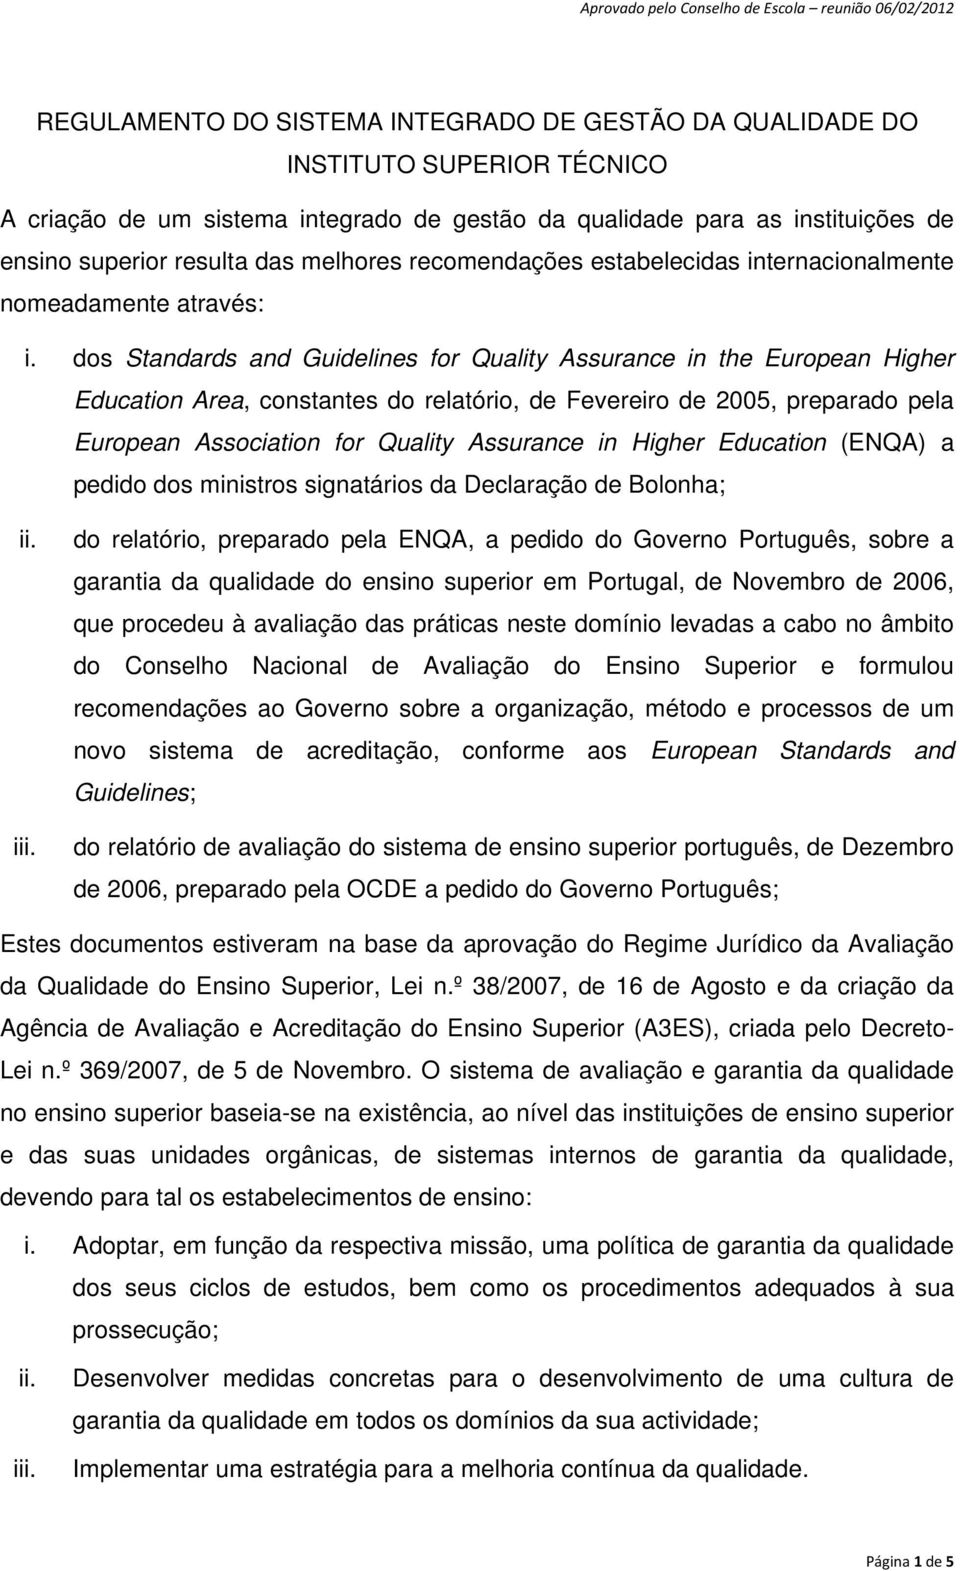 dos Standards and Guidelines for Quality Assurance in the European Higher Education Area, constantes do relatório, de Fevereiro de 2005, preparado pela European Association for Quality Assurance in